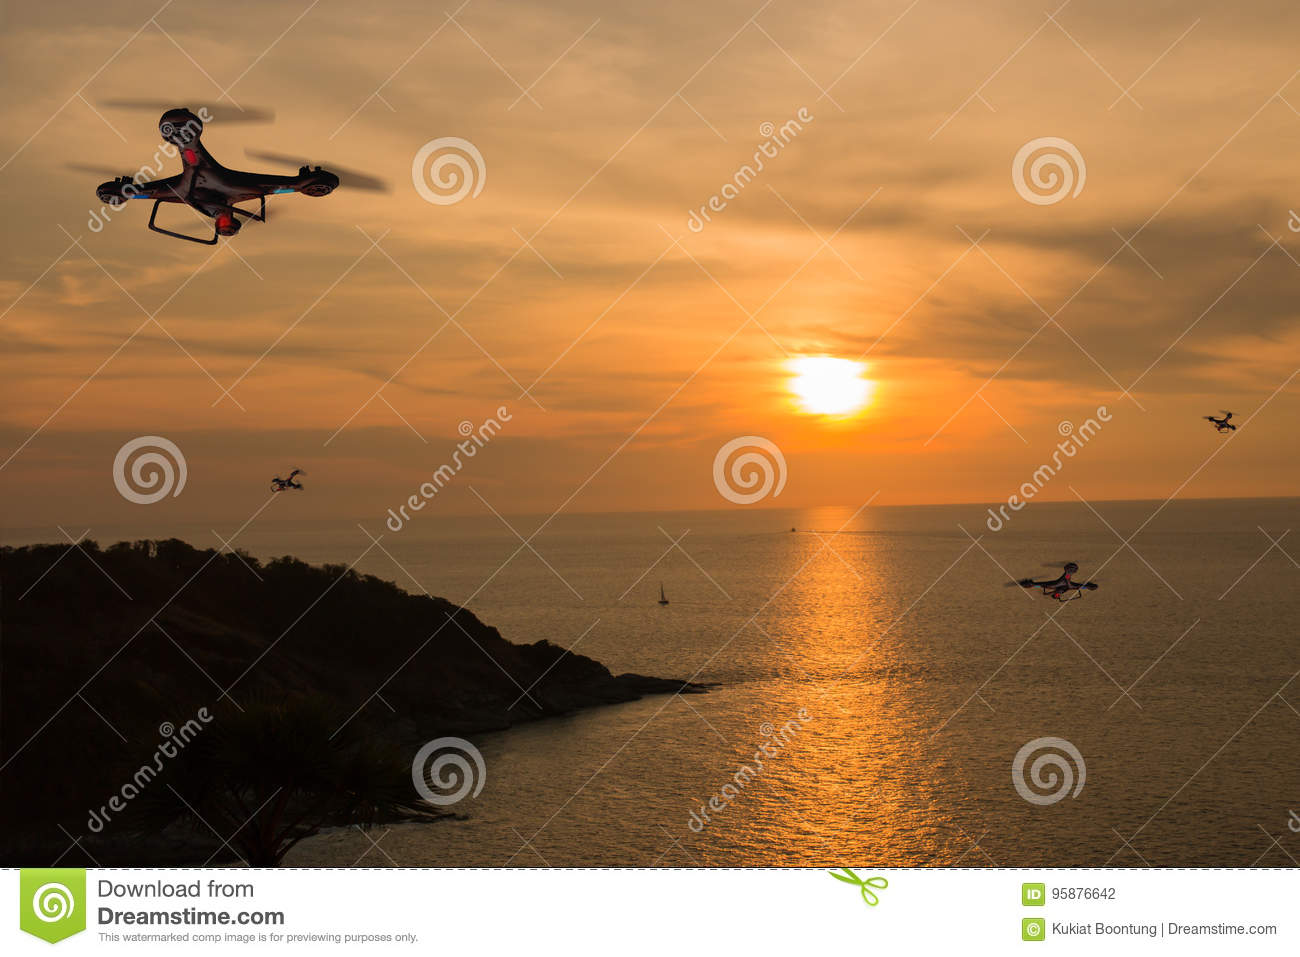 Drones with bright sky